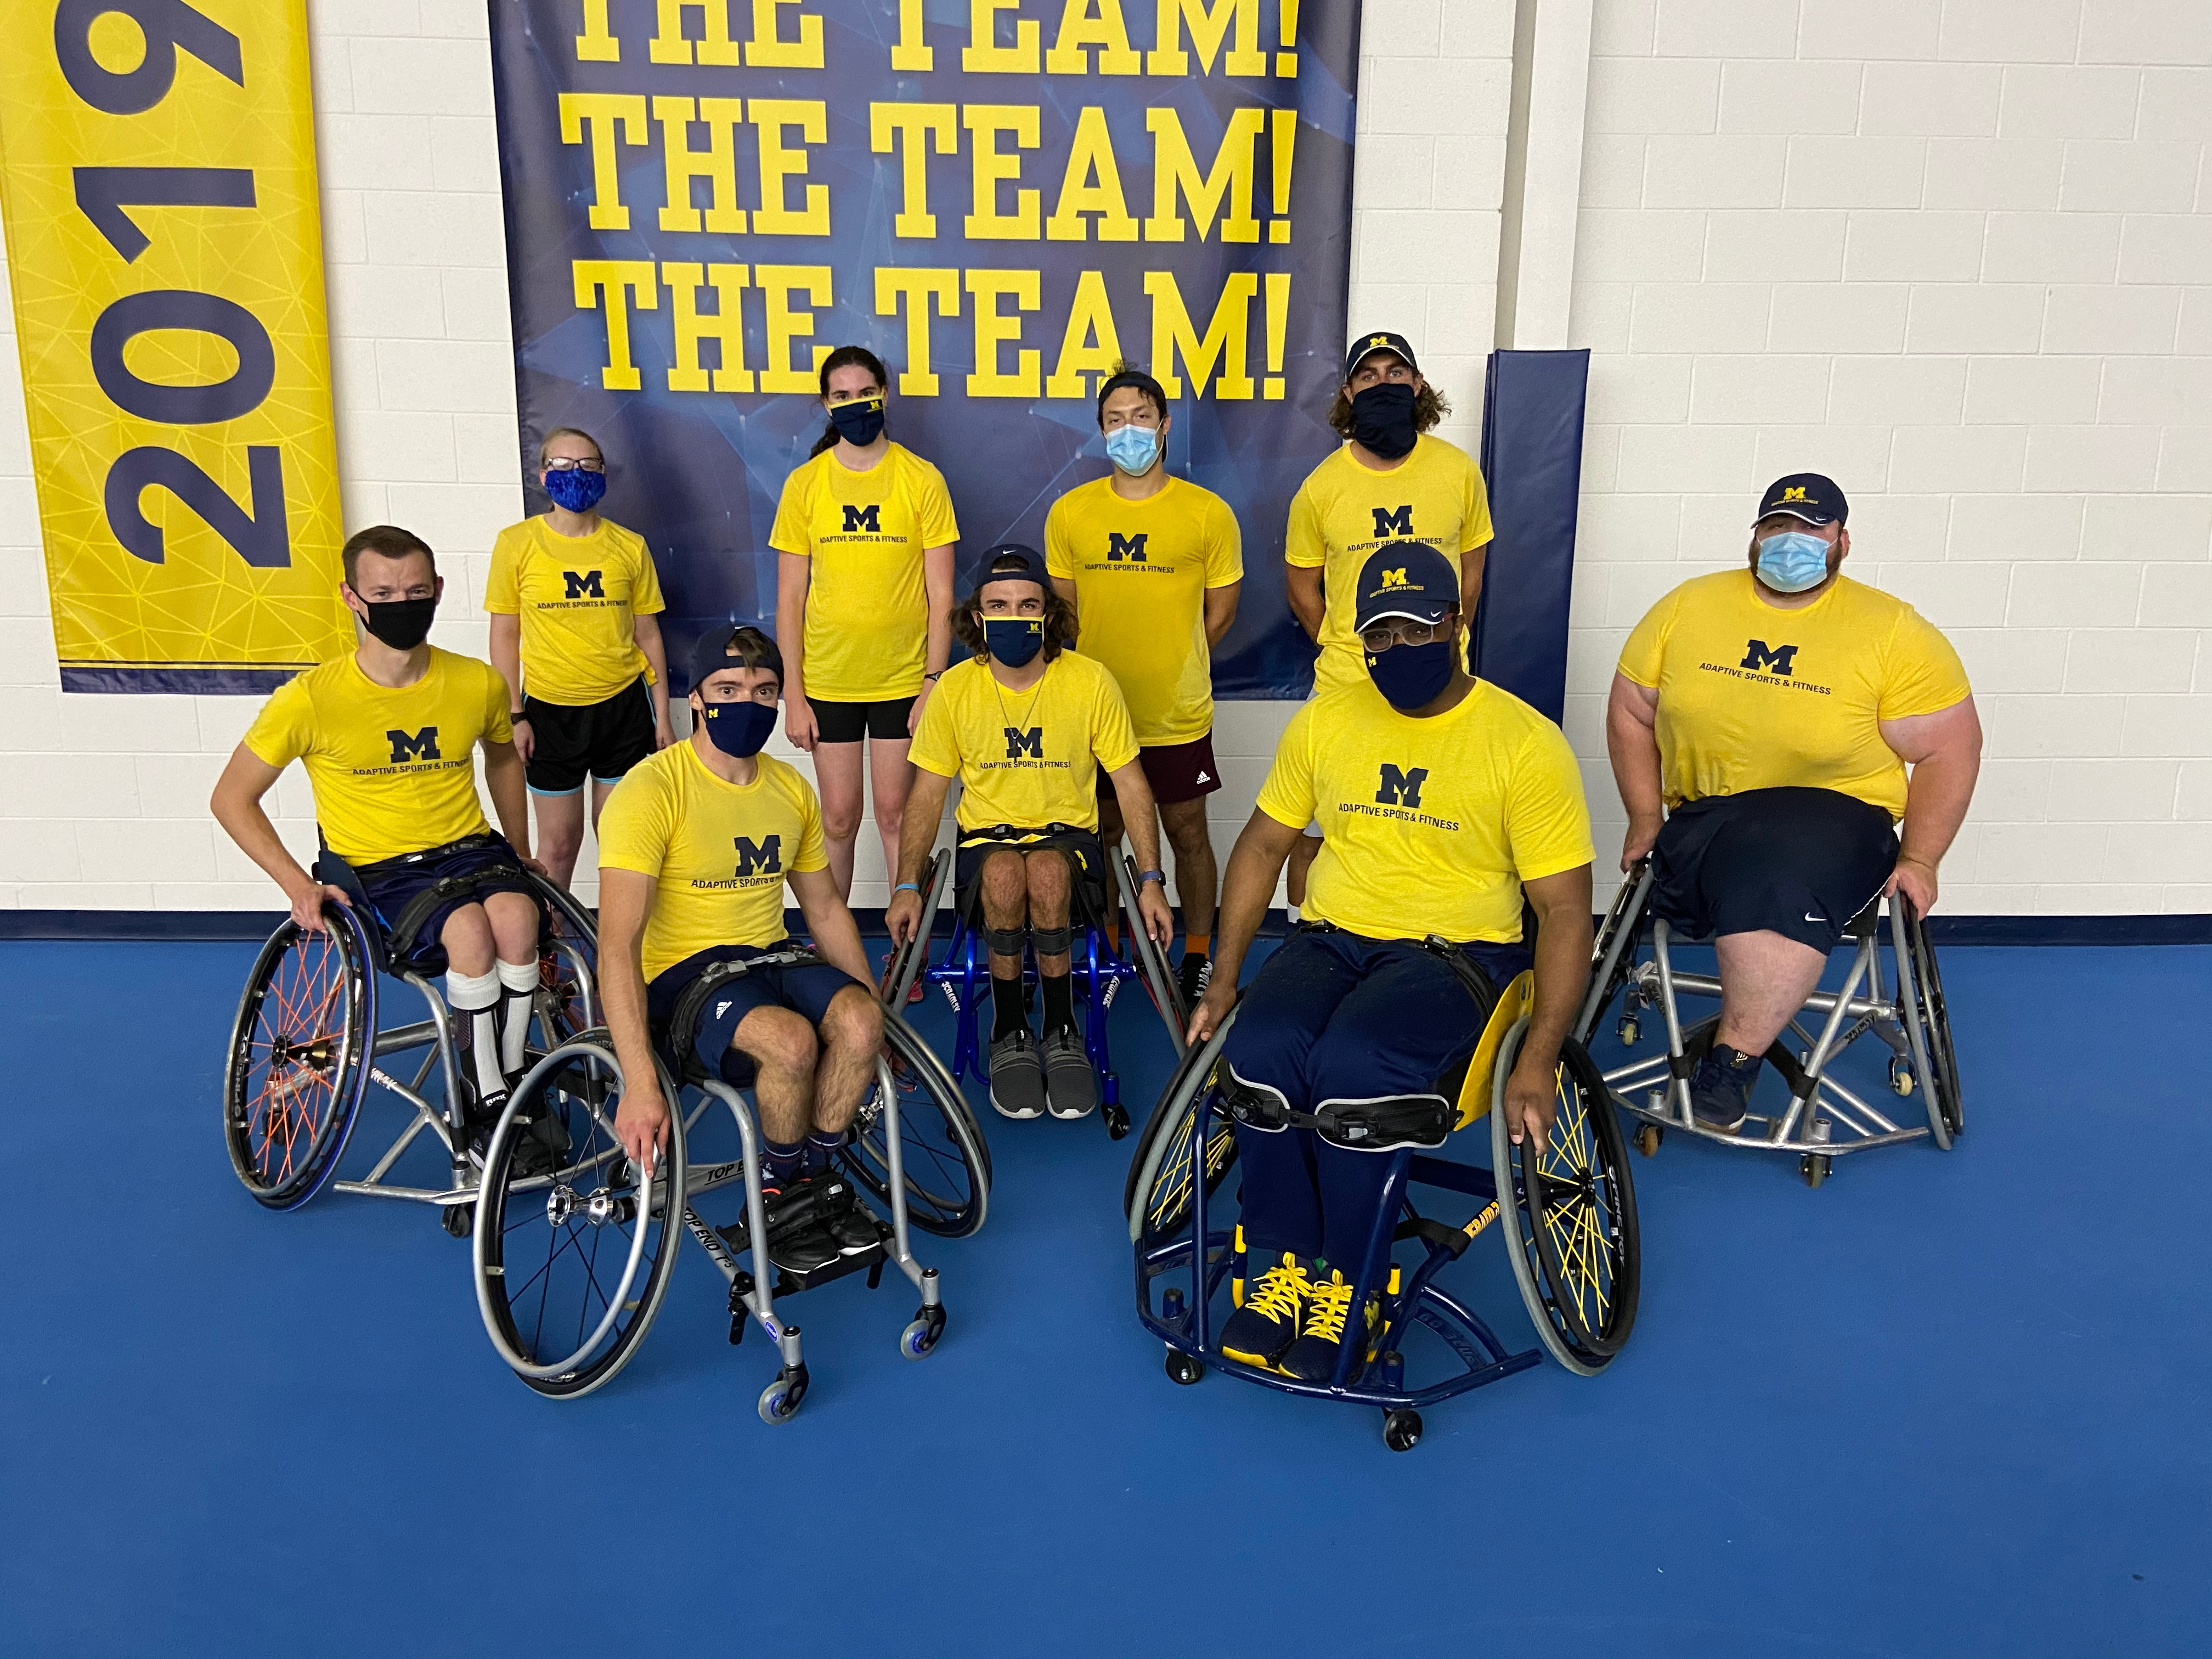 The adaptive sports and fitness team at a wheelchair tennis practice.